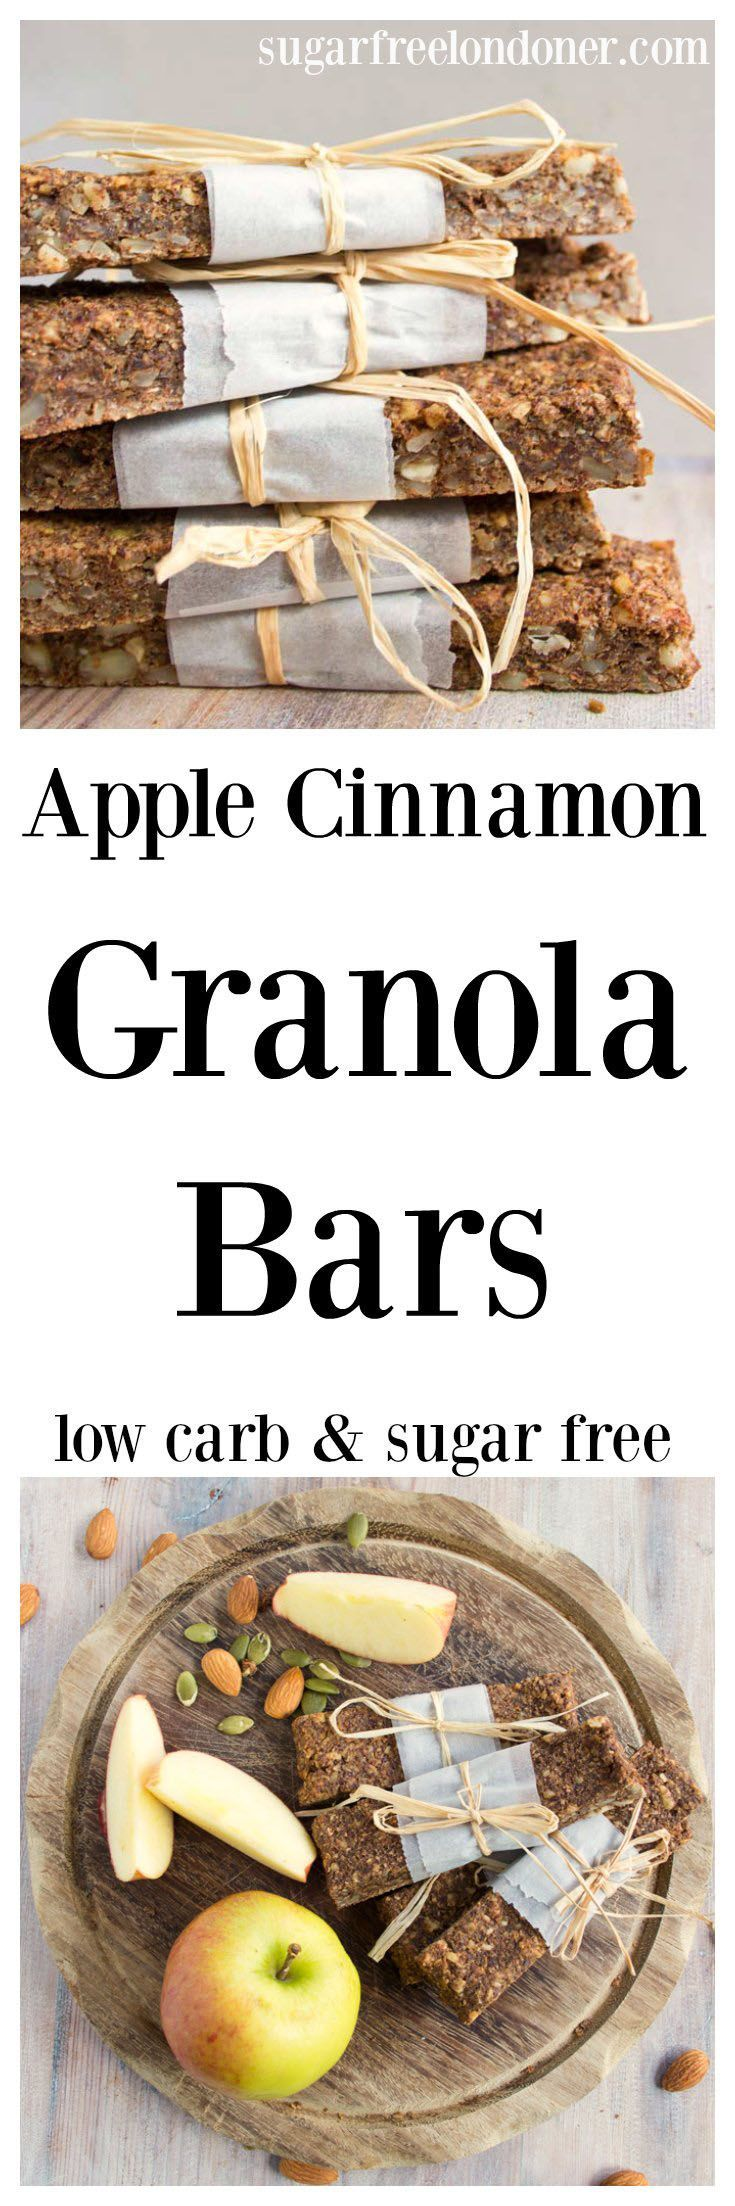 An insanely satisfying grab and go snack for busy days: These grain free, low carb and sugar free apple cinnamon granola bars can be made in advance. Chewy, nutty and perfect when for you're out and about.